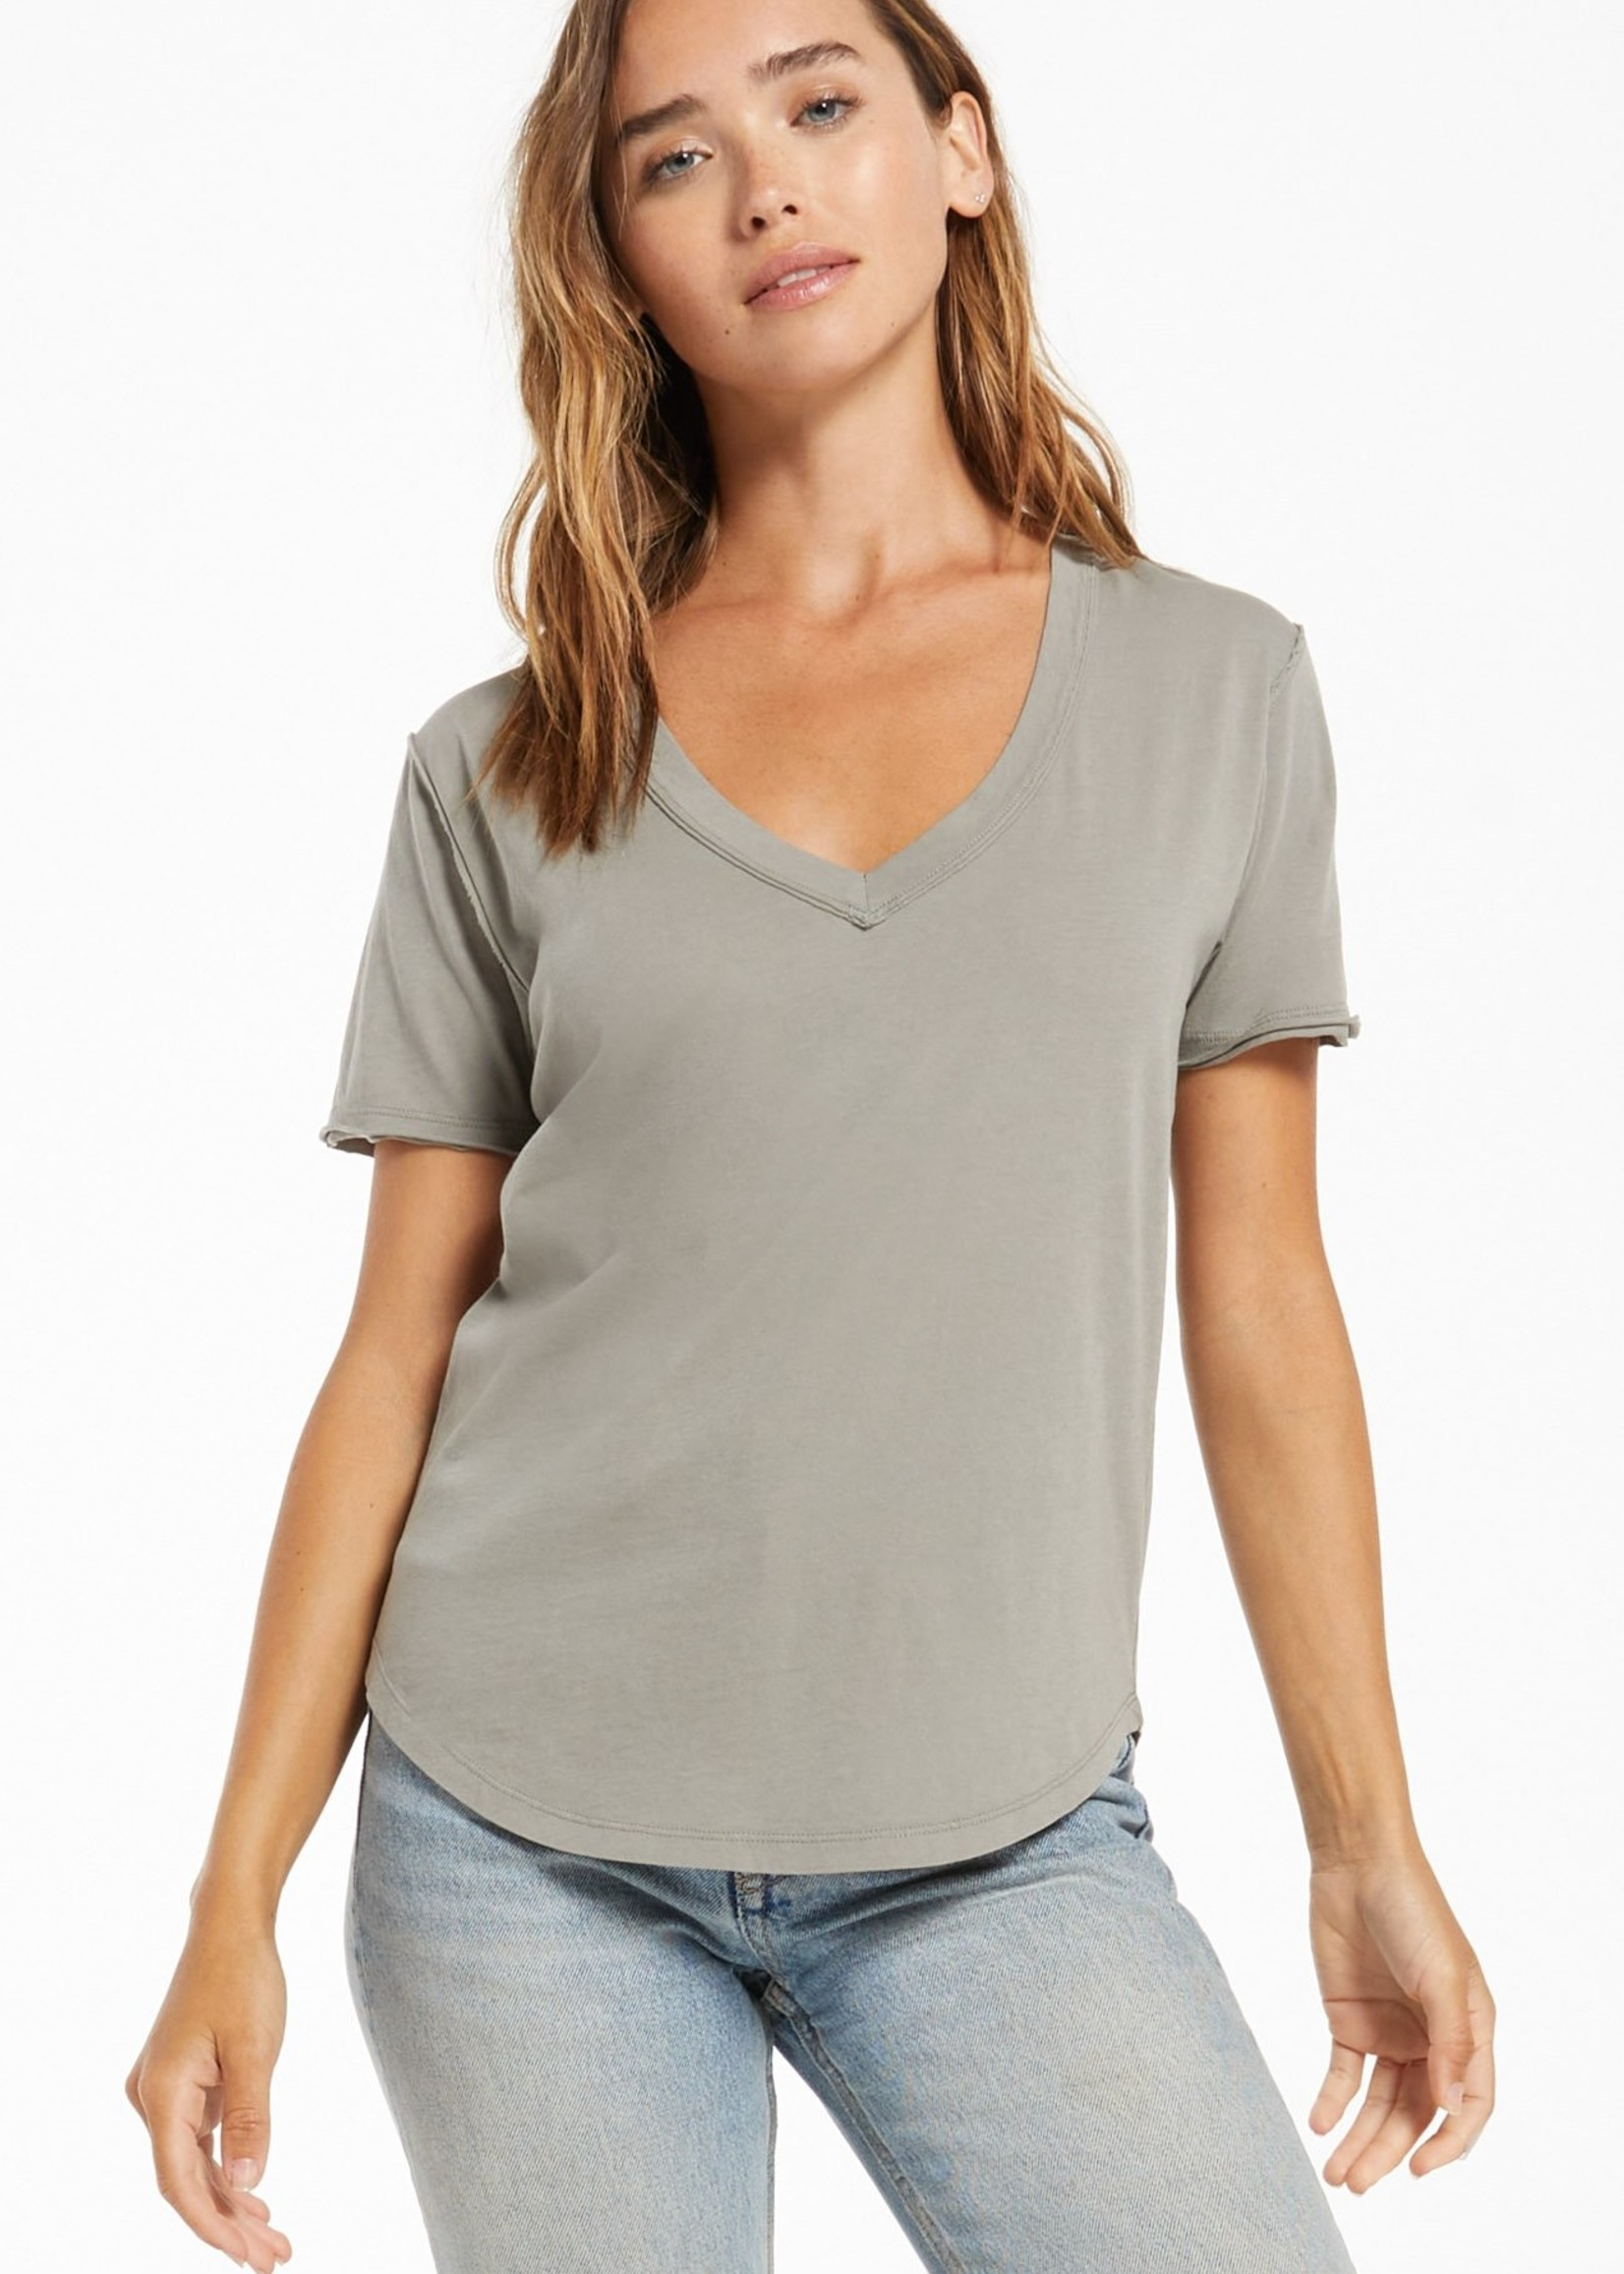 Z Supply Organic Cotton V Neck Tee - Dusty Sage